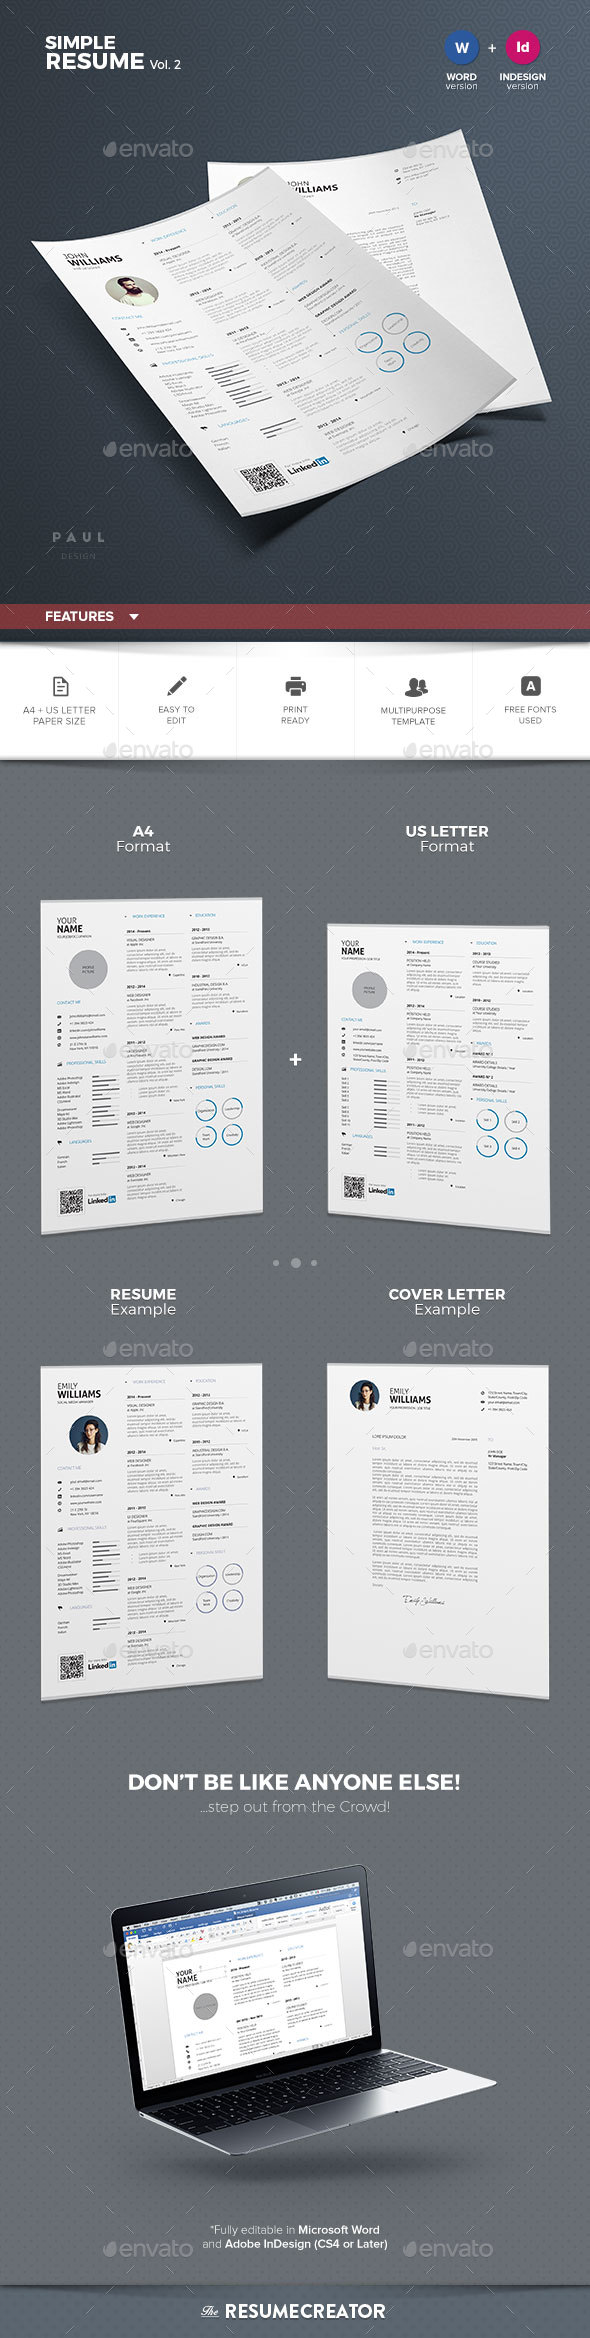 Simple Resume Vol. 2 | Pinterest